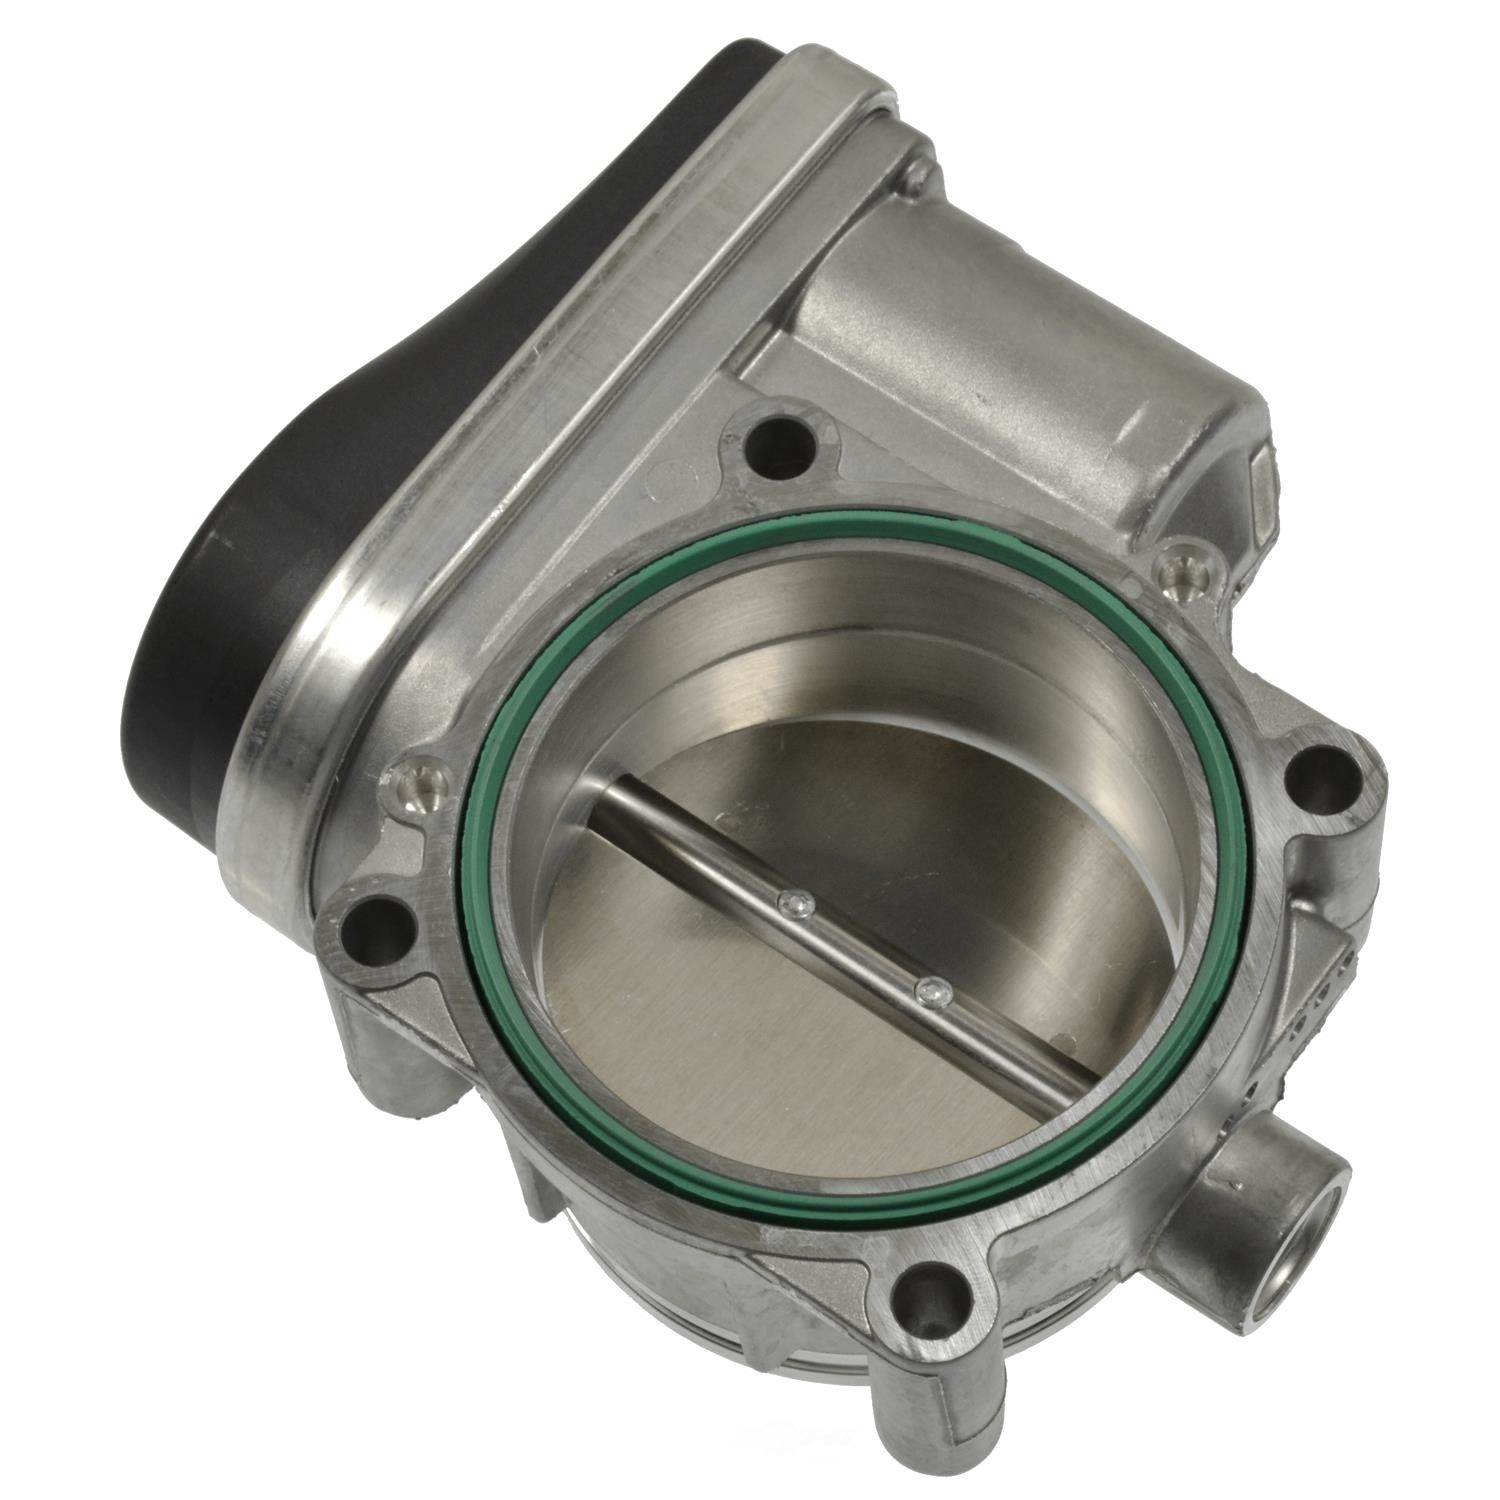 TECHSMART - Fuel Injection Throttle Body Assembly - TCS S20071